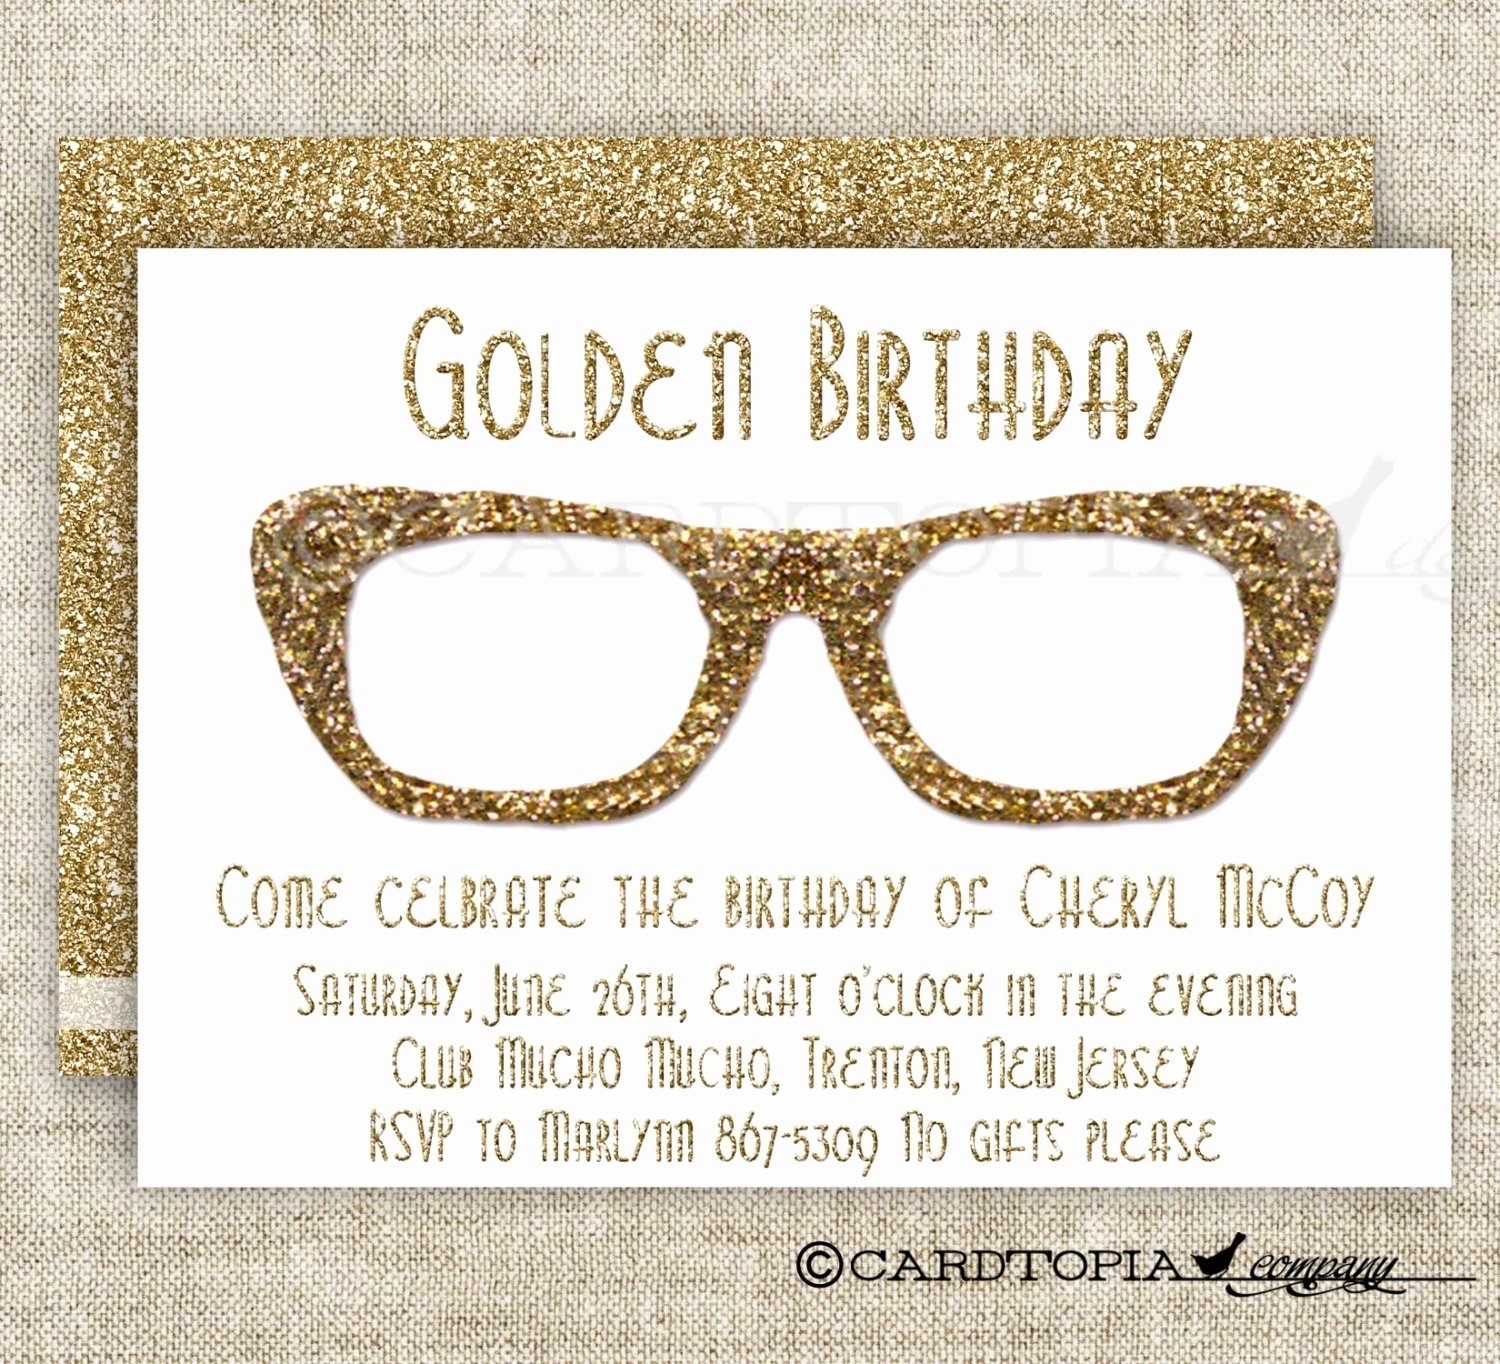 10 Fabulous Golden Birthday Ideas For Adults golden birthday card fresh hipster birthday party invitations for 2020